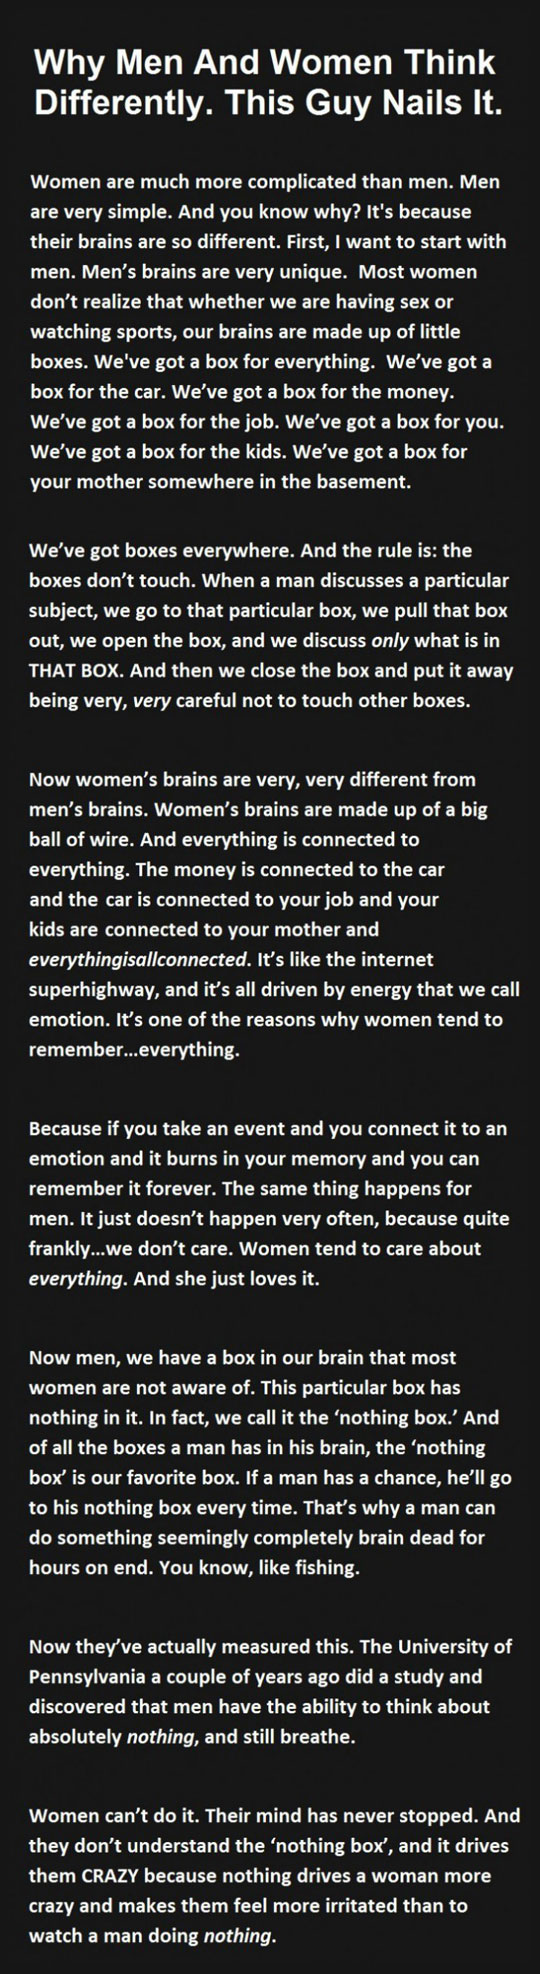 funny-men-women-boxes-brain-head